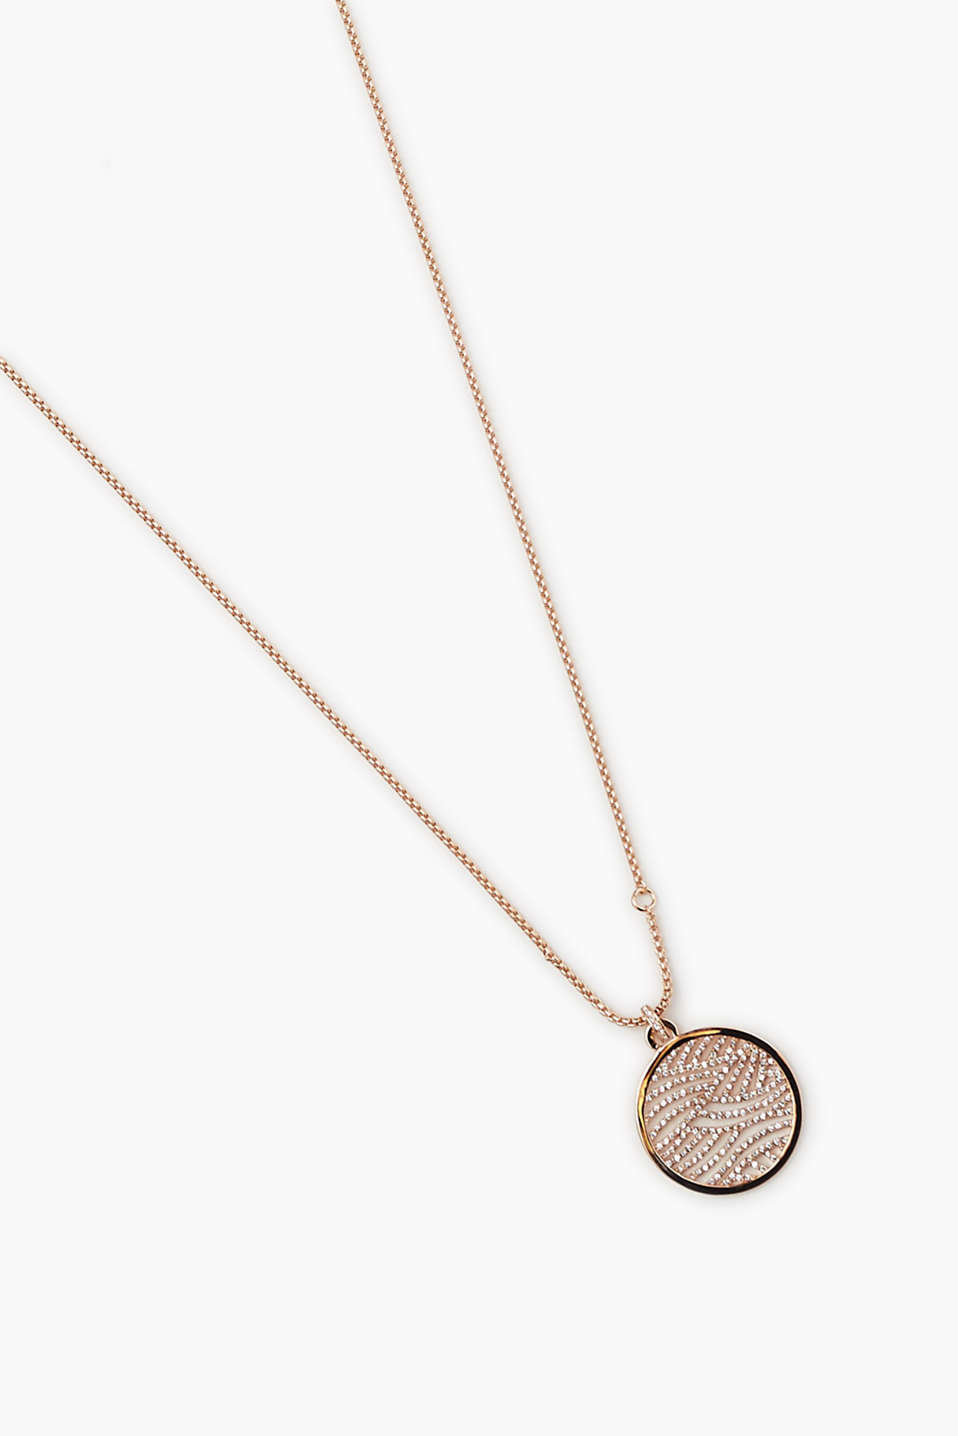 We love rose gold! Length-adjustable curb chain with pendant